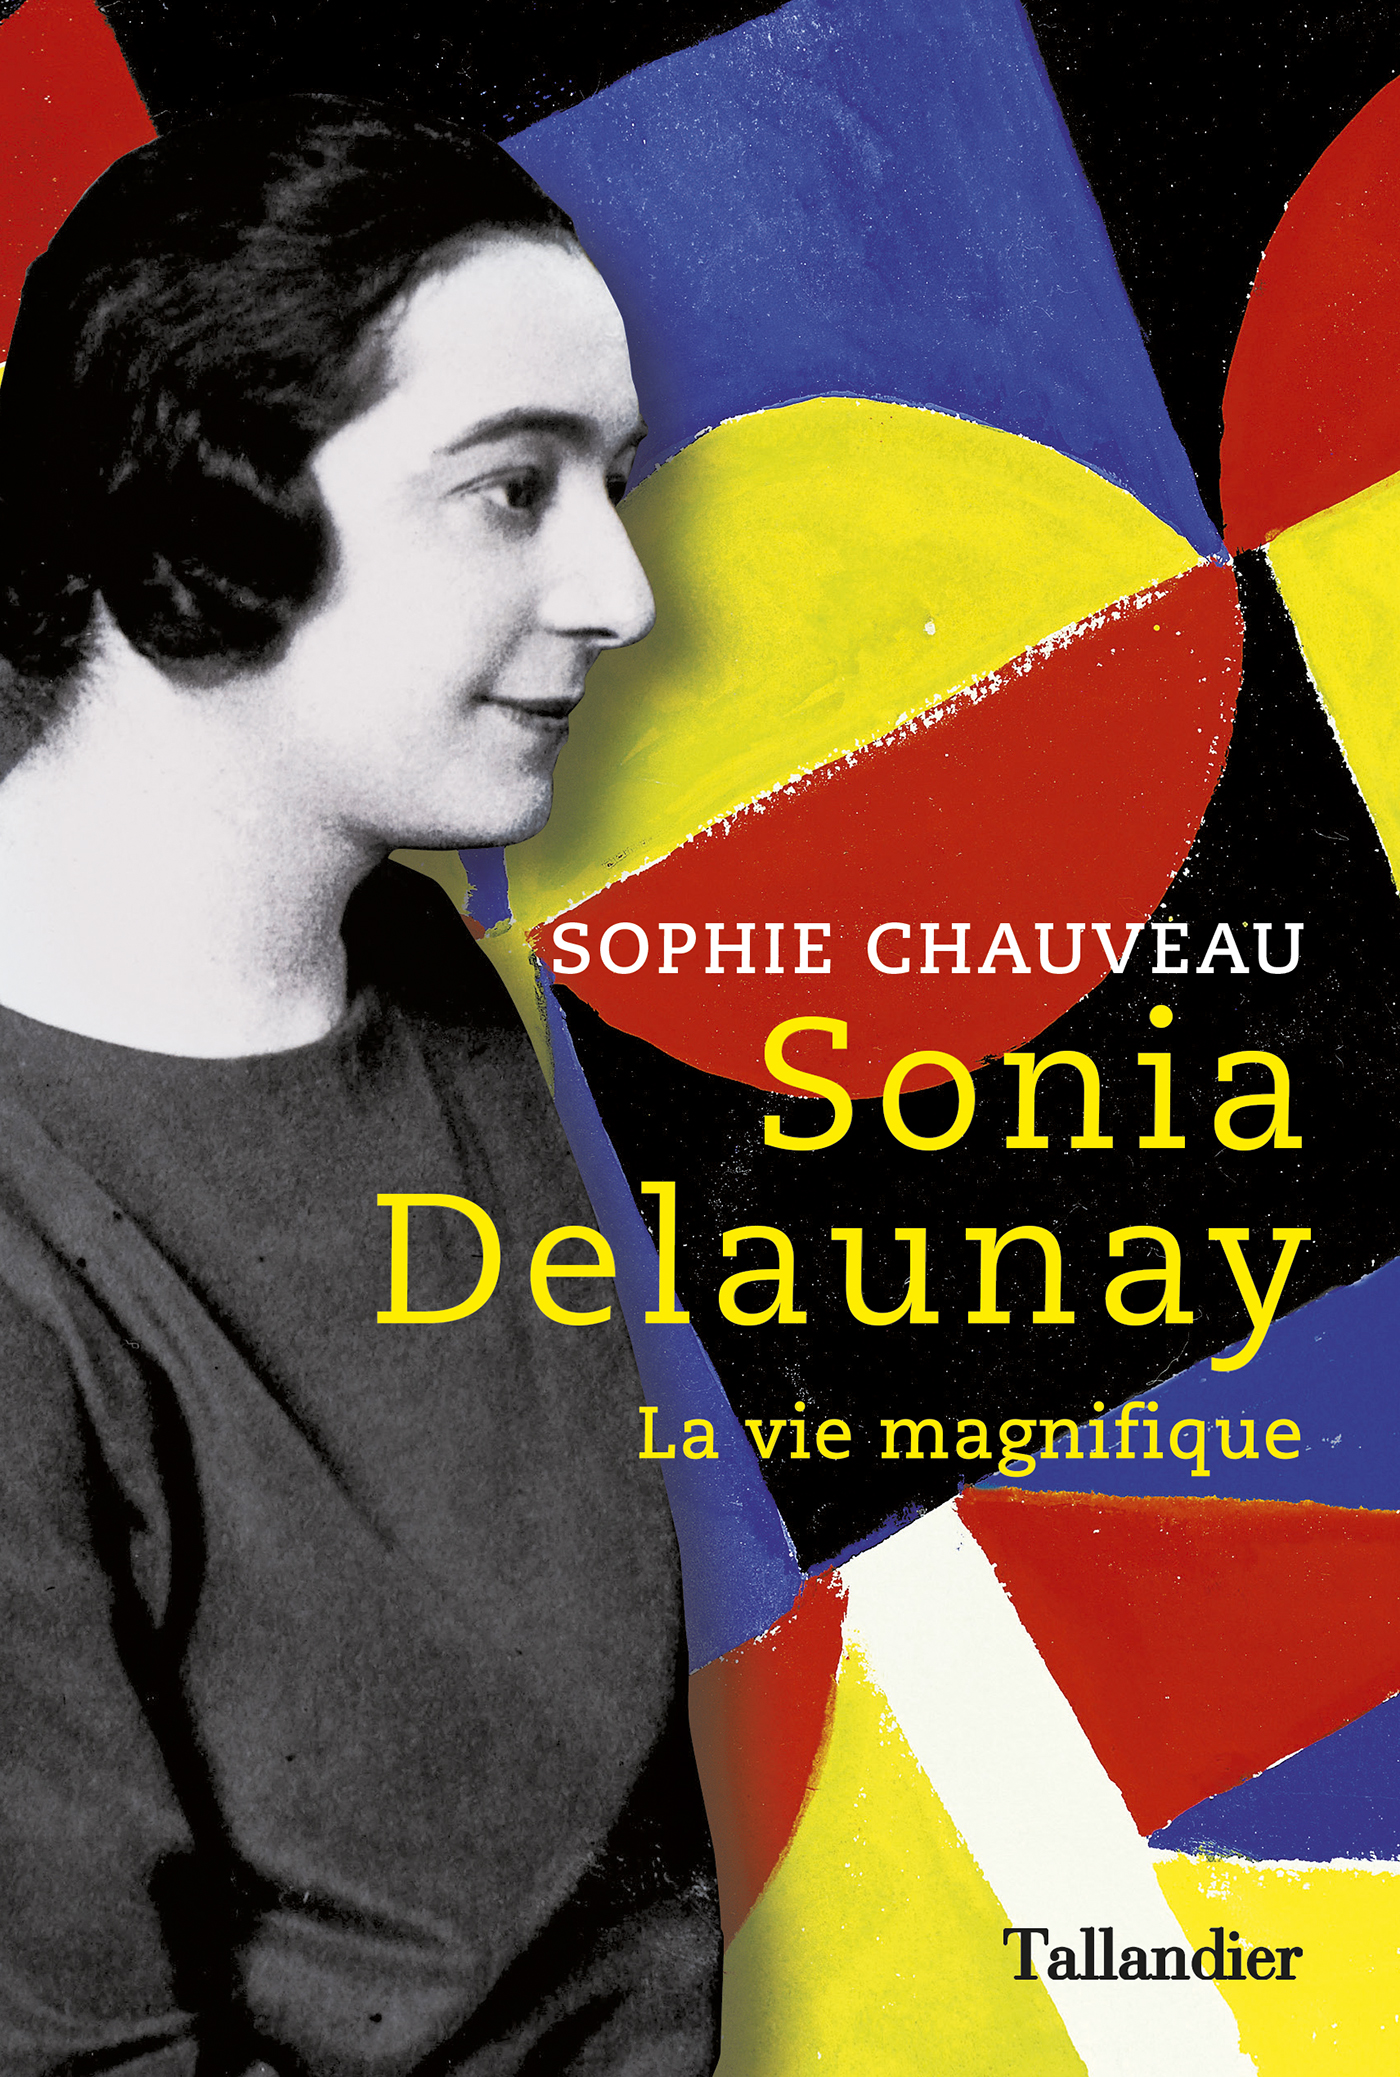 Sonia Delaunay, Louise Bourgeois: deux femmes puissantes